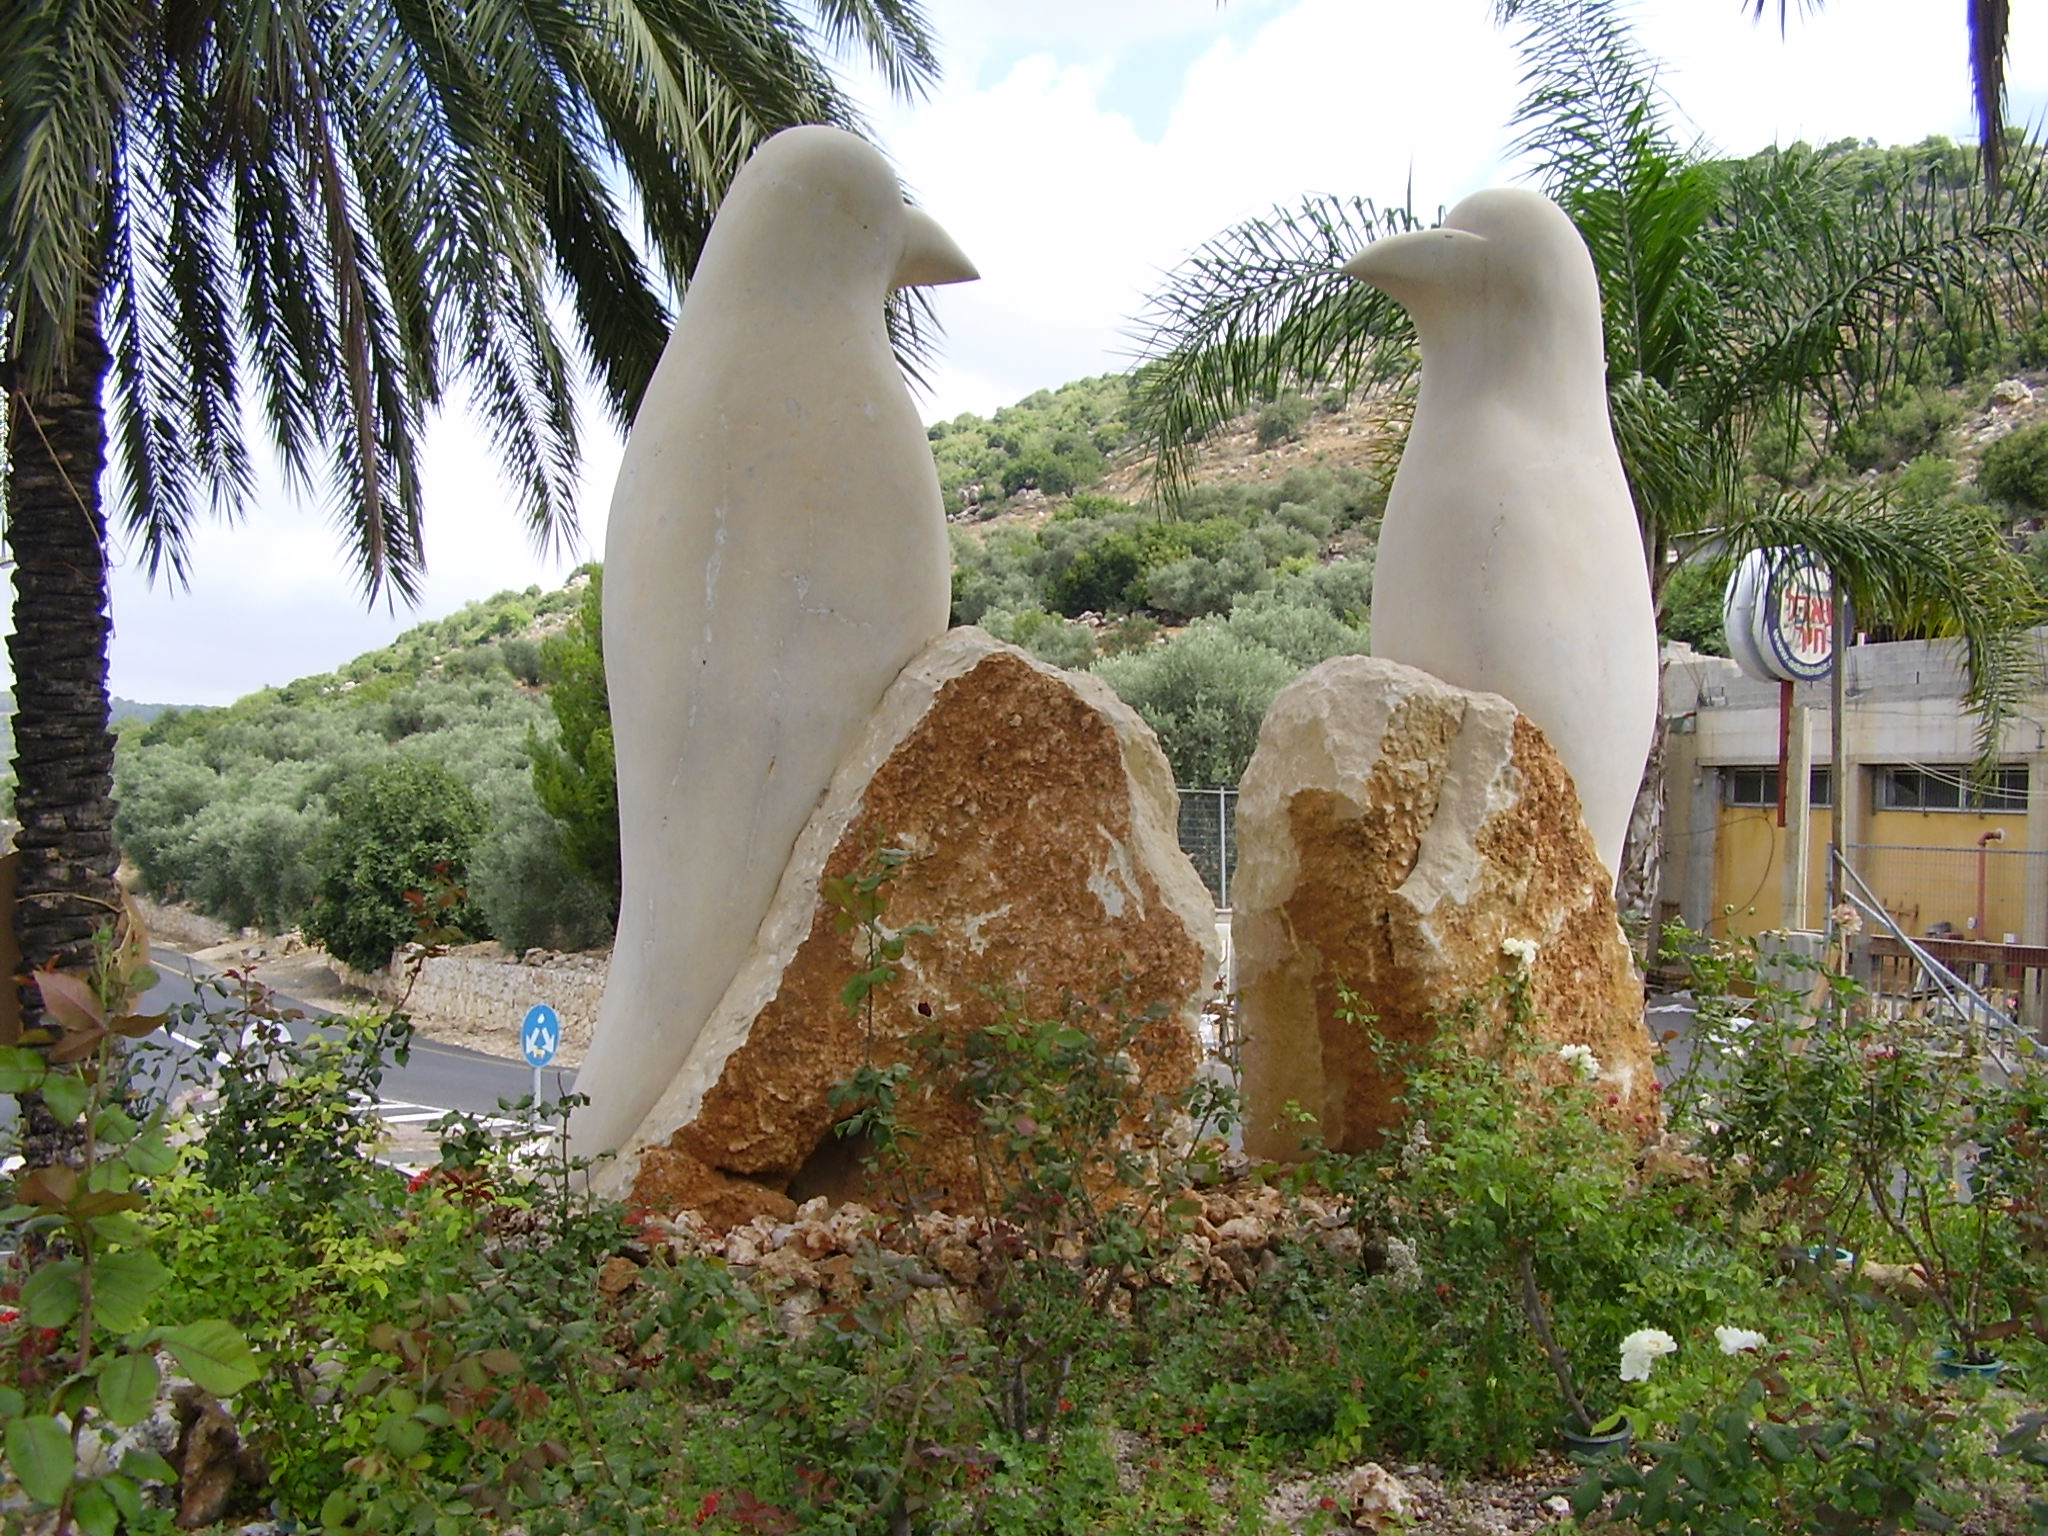 Pekiin Israel  city photos gallery : PikiWiki Israel 8860 statue of birds in pekiin Wikimedia ...